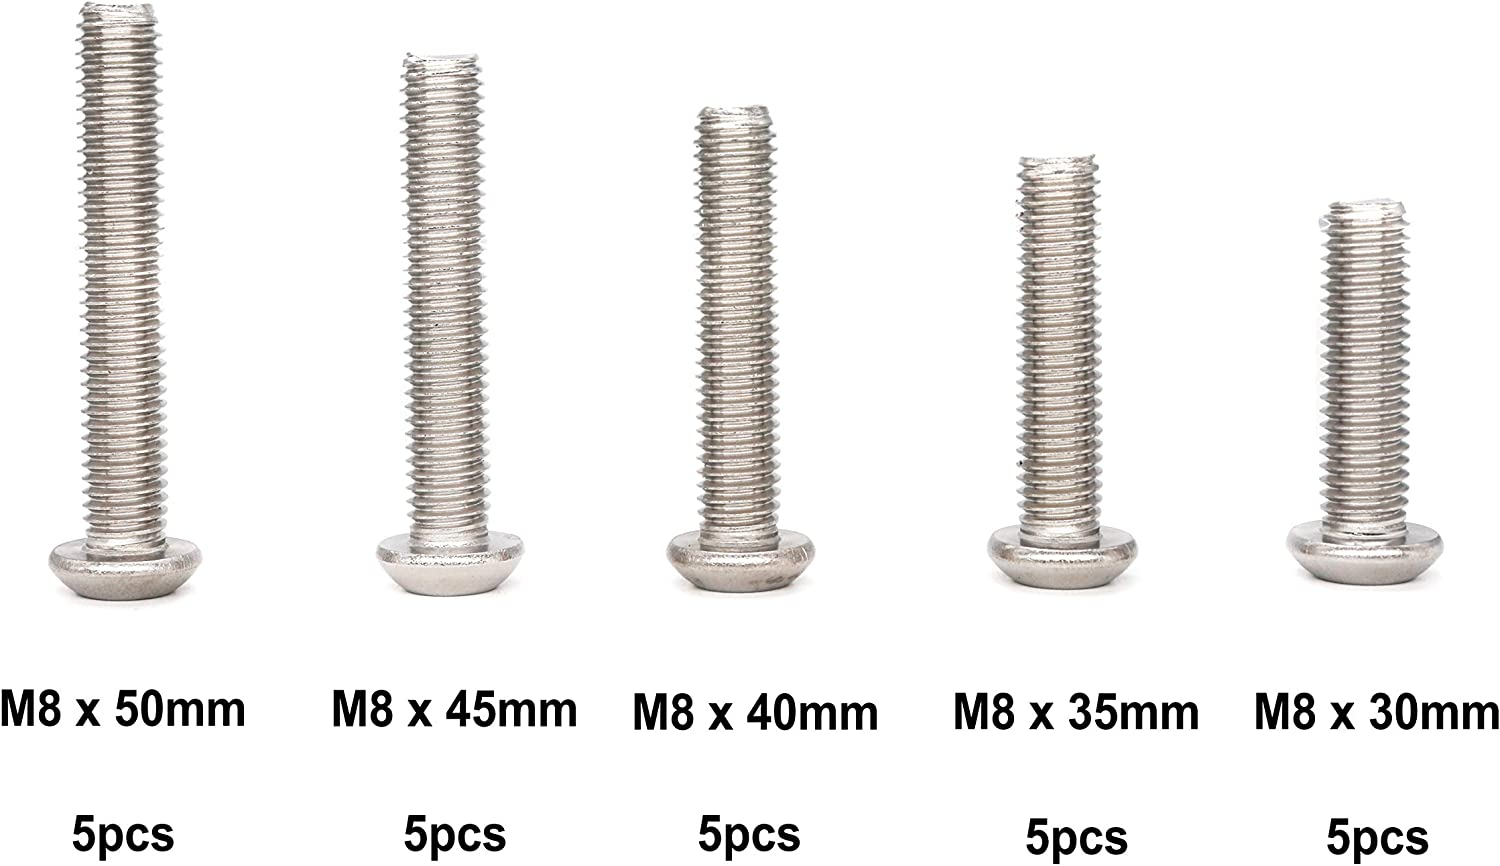 Qty 100 Button Post Torx M8 x 20mm Stainless T40 Security Screws Tamperproof